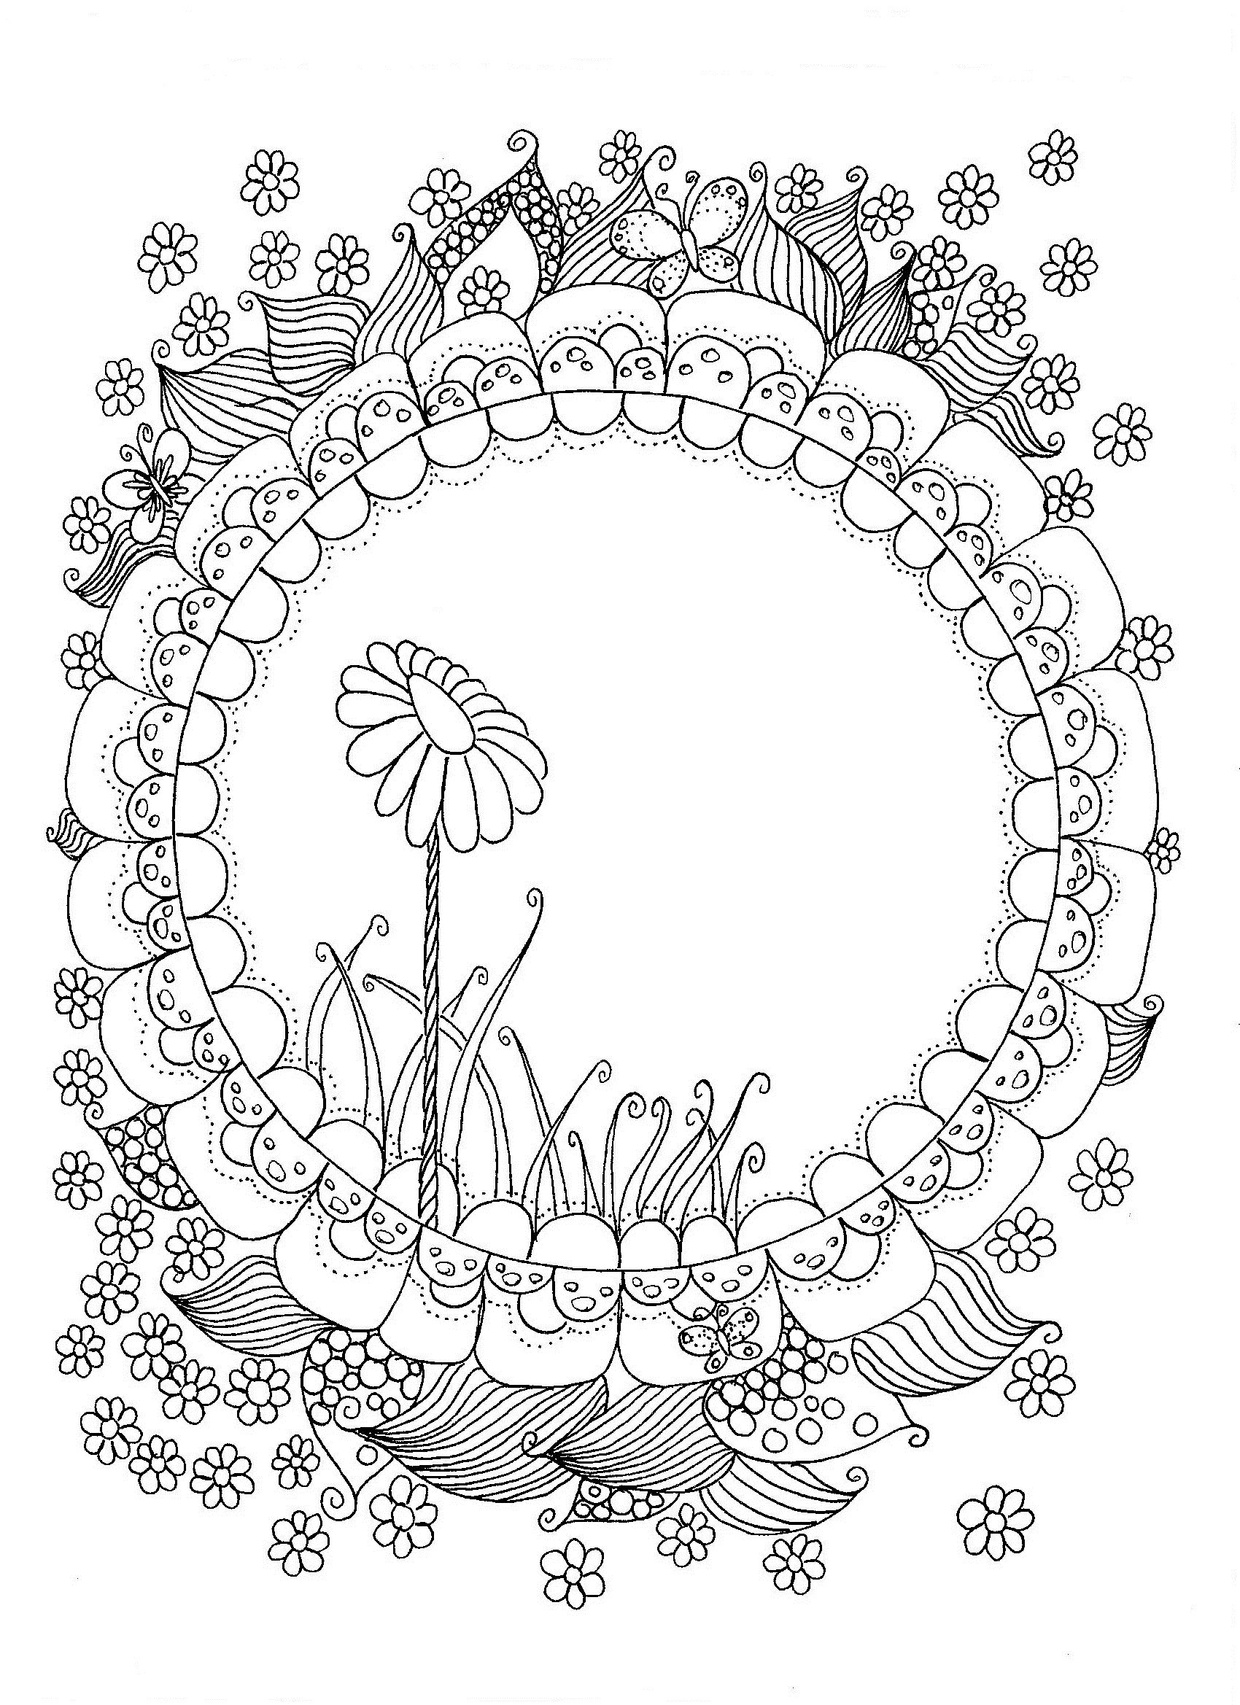 Stand Like a Flower Coloring Page